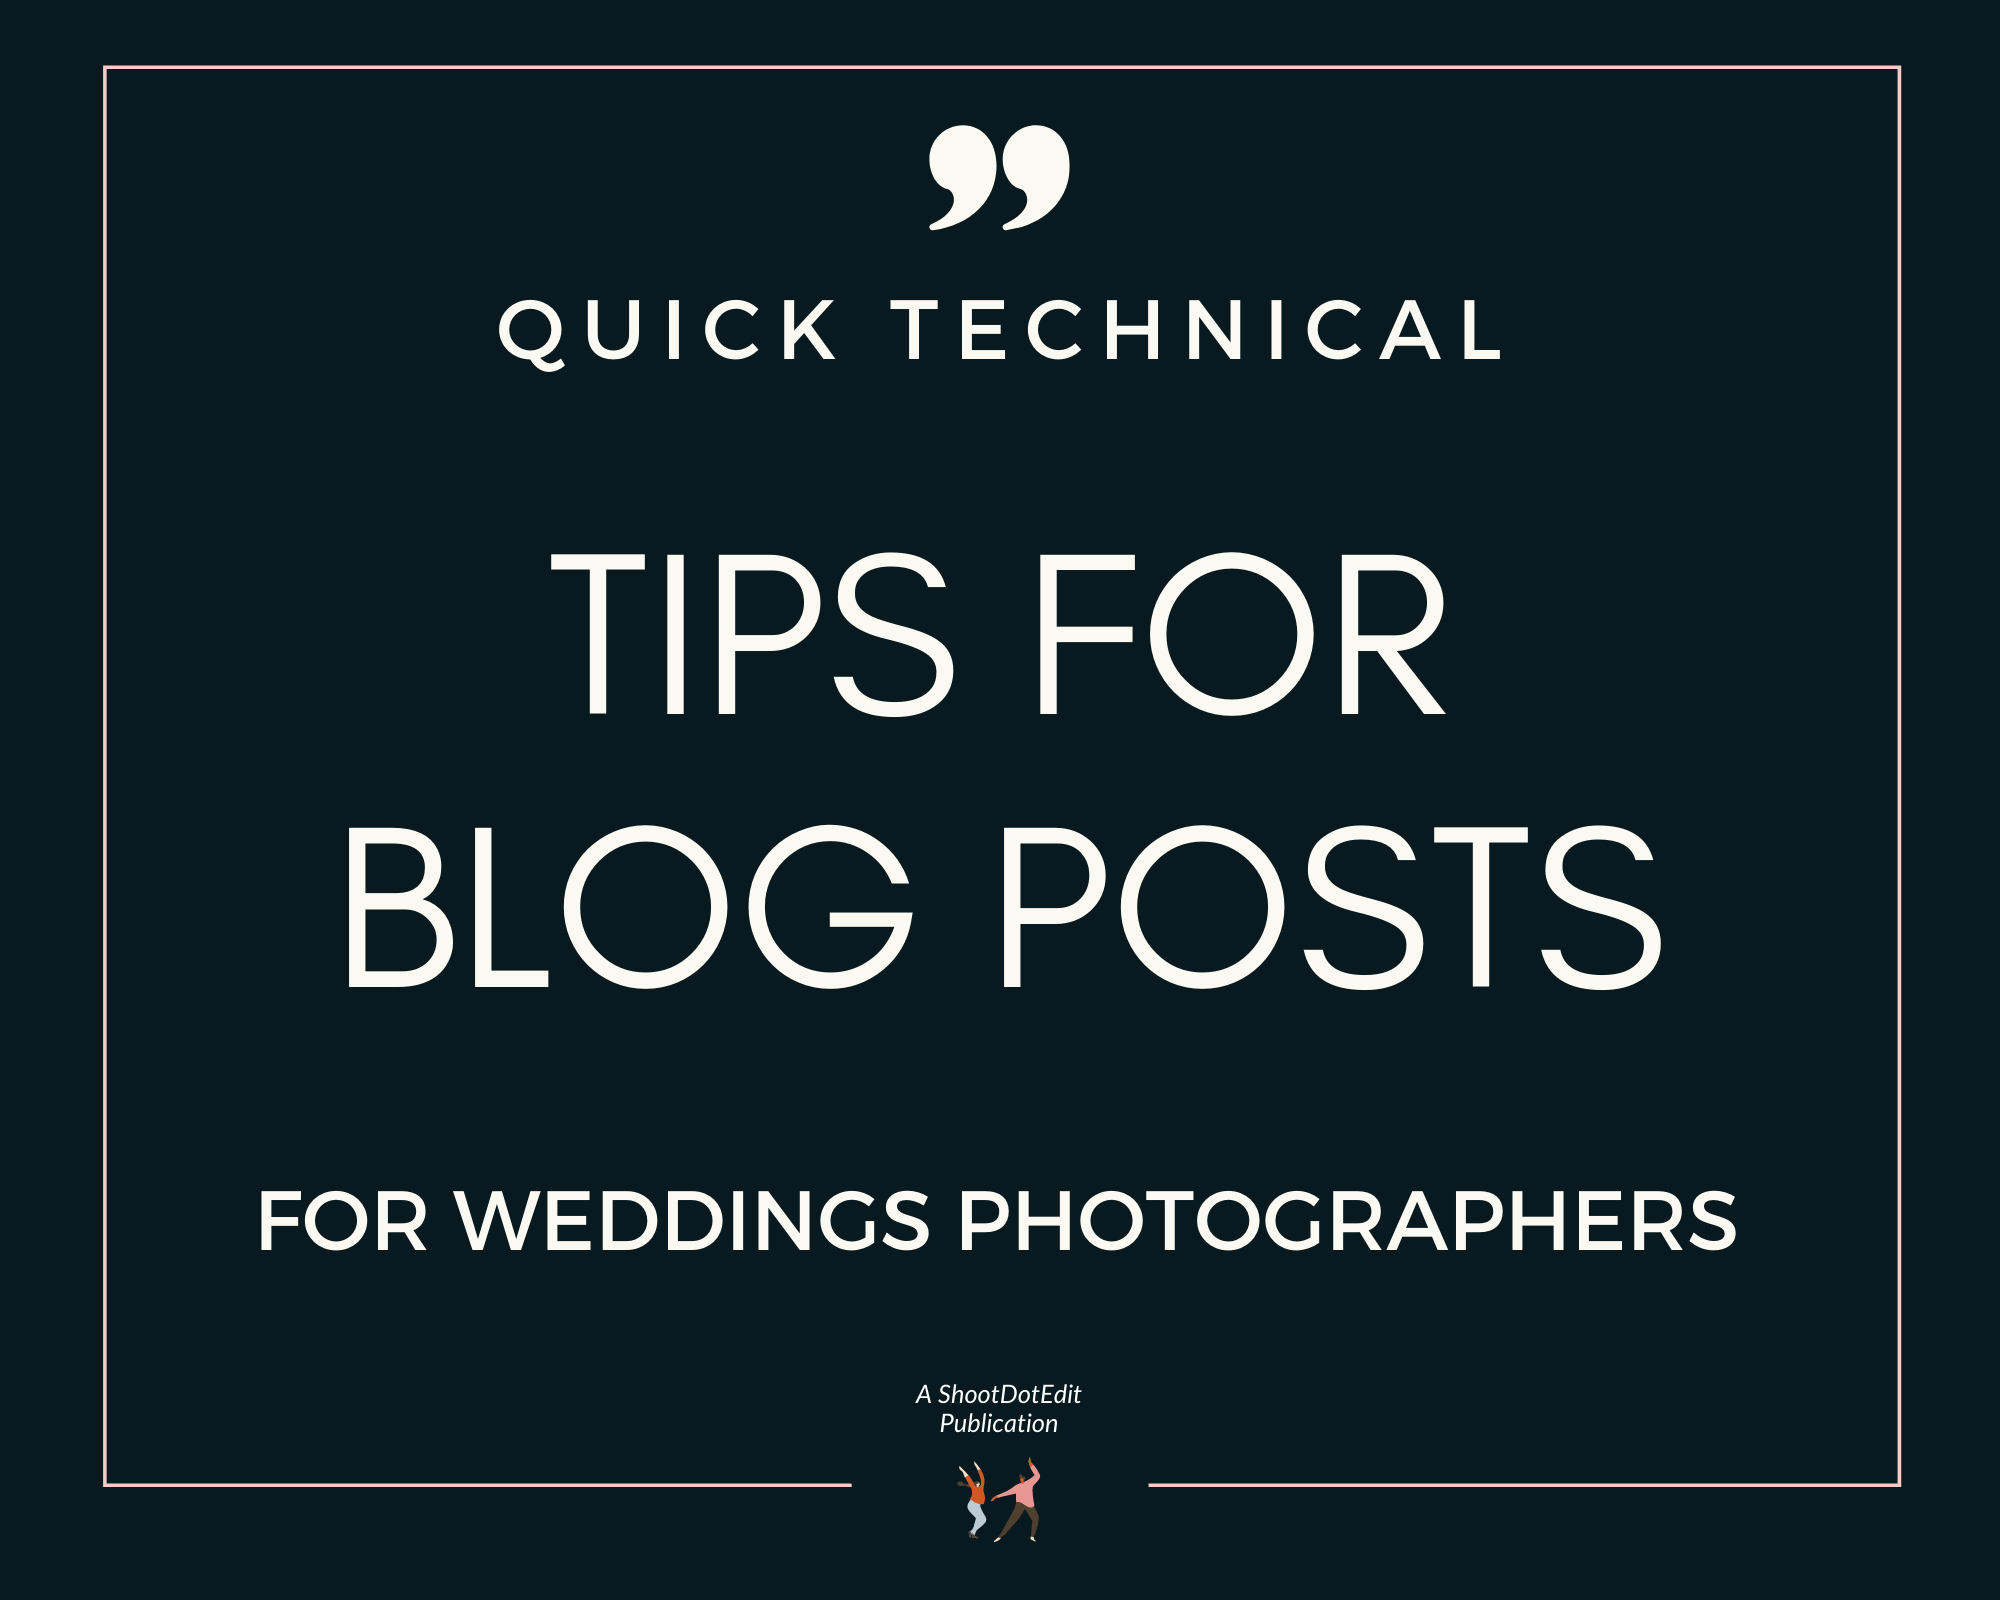 Graphic displaying - Quick technical tips for blog posts for wedding photographers